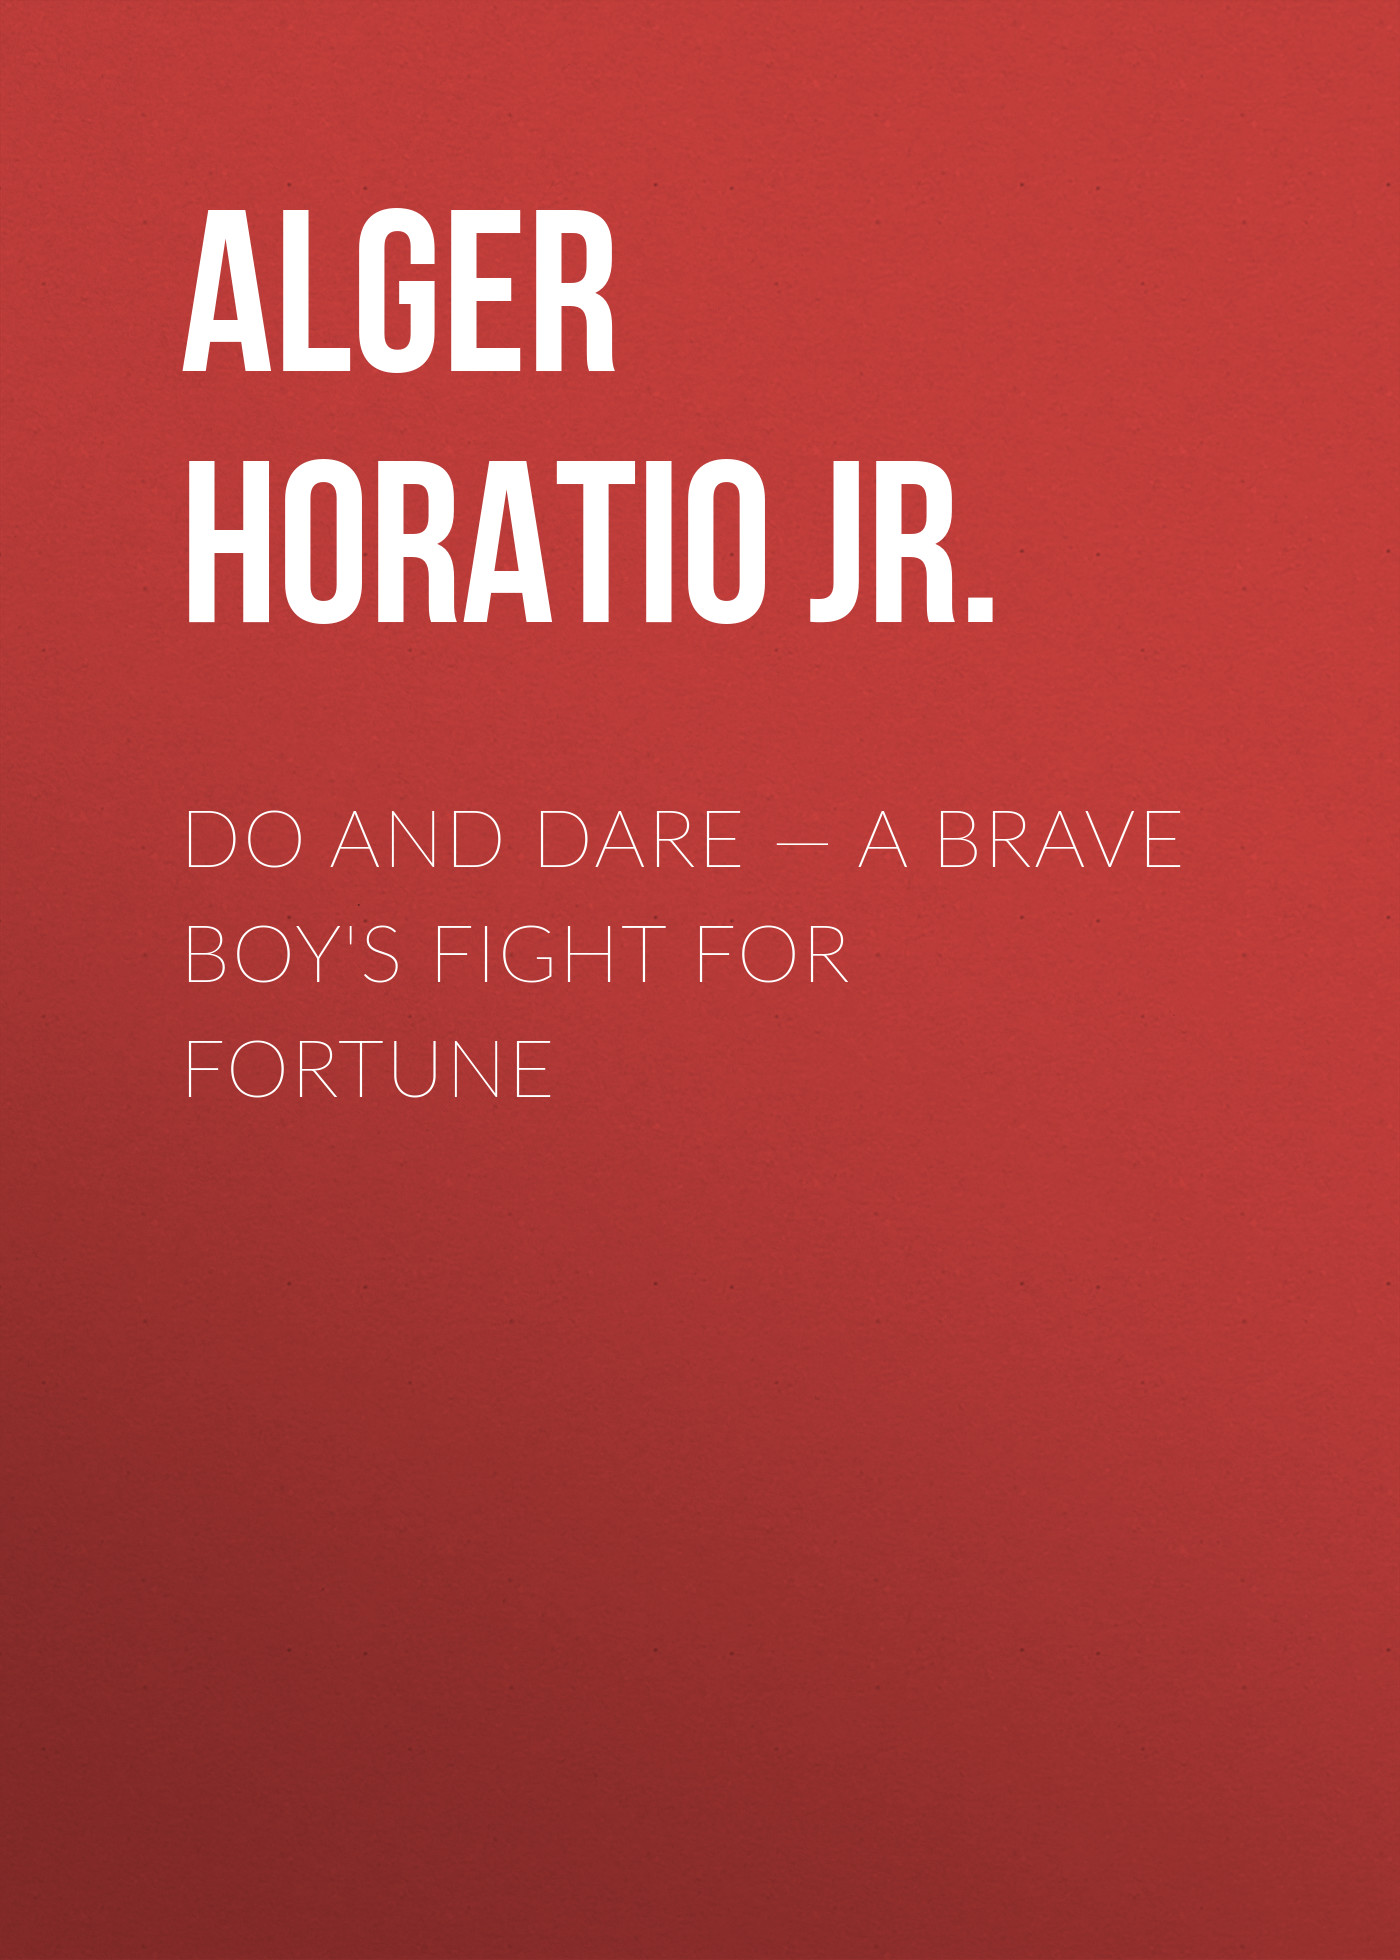 Alger Horatio Jr. Do and Dare — a Brave Boy's Fight for Fortune bohemia ivele crystal подвесная люстра bohemia ivele crystal 1402 10 240 ni leafs